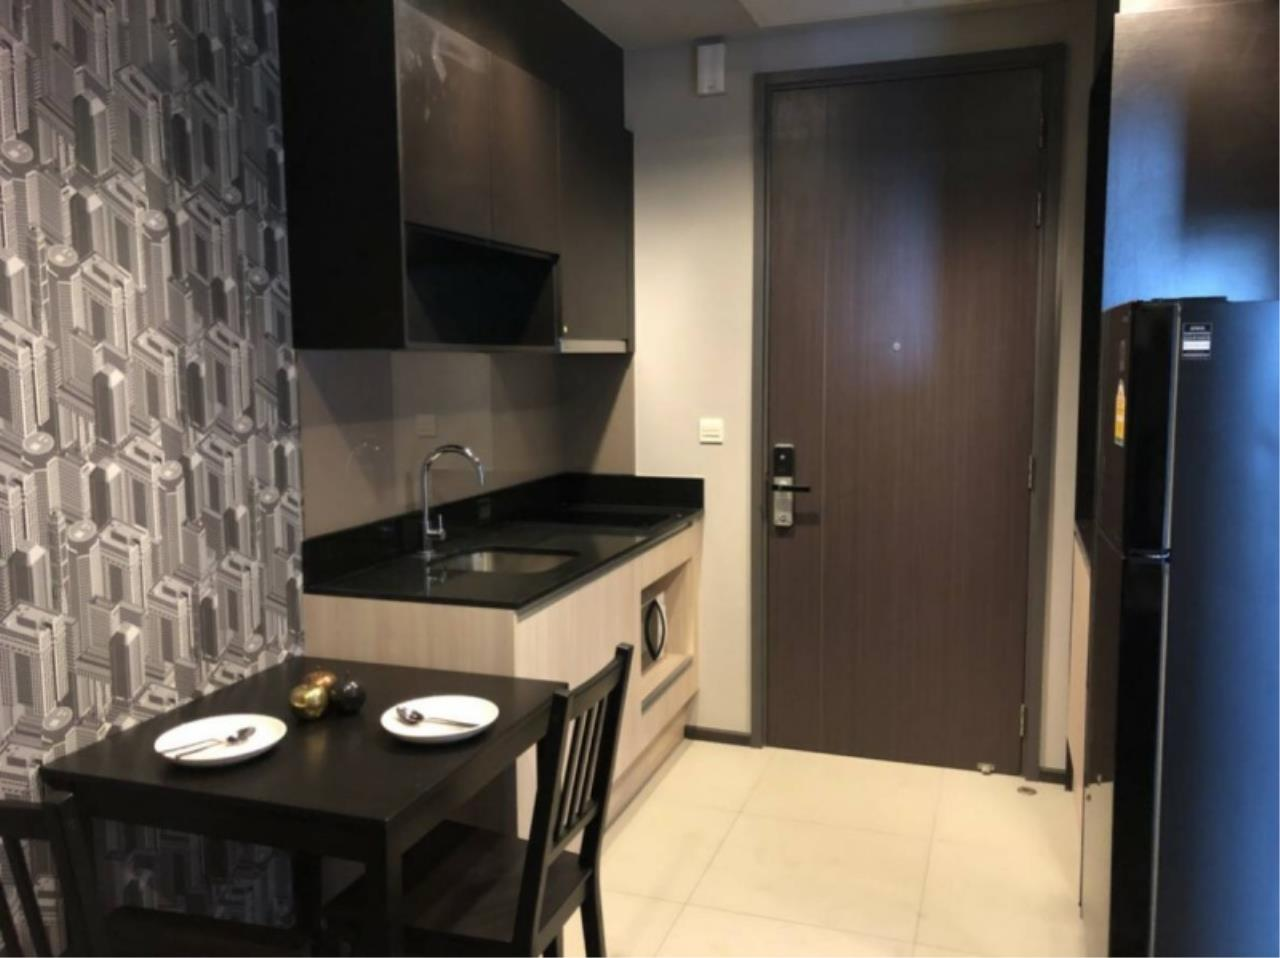 Century21 Skylux Agency's Edge Sukhumvit 23 / Condo For Sale / 1 Bedroom / 31 SQM / BTS Asok / Bangkok 4